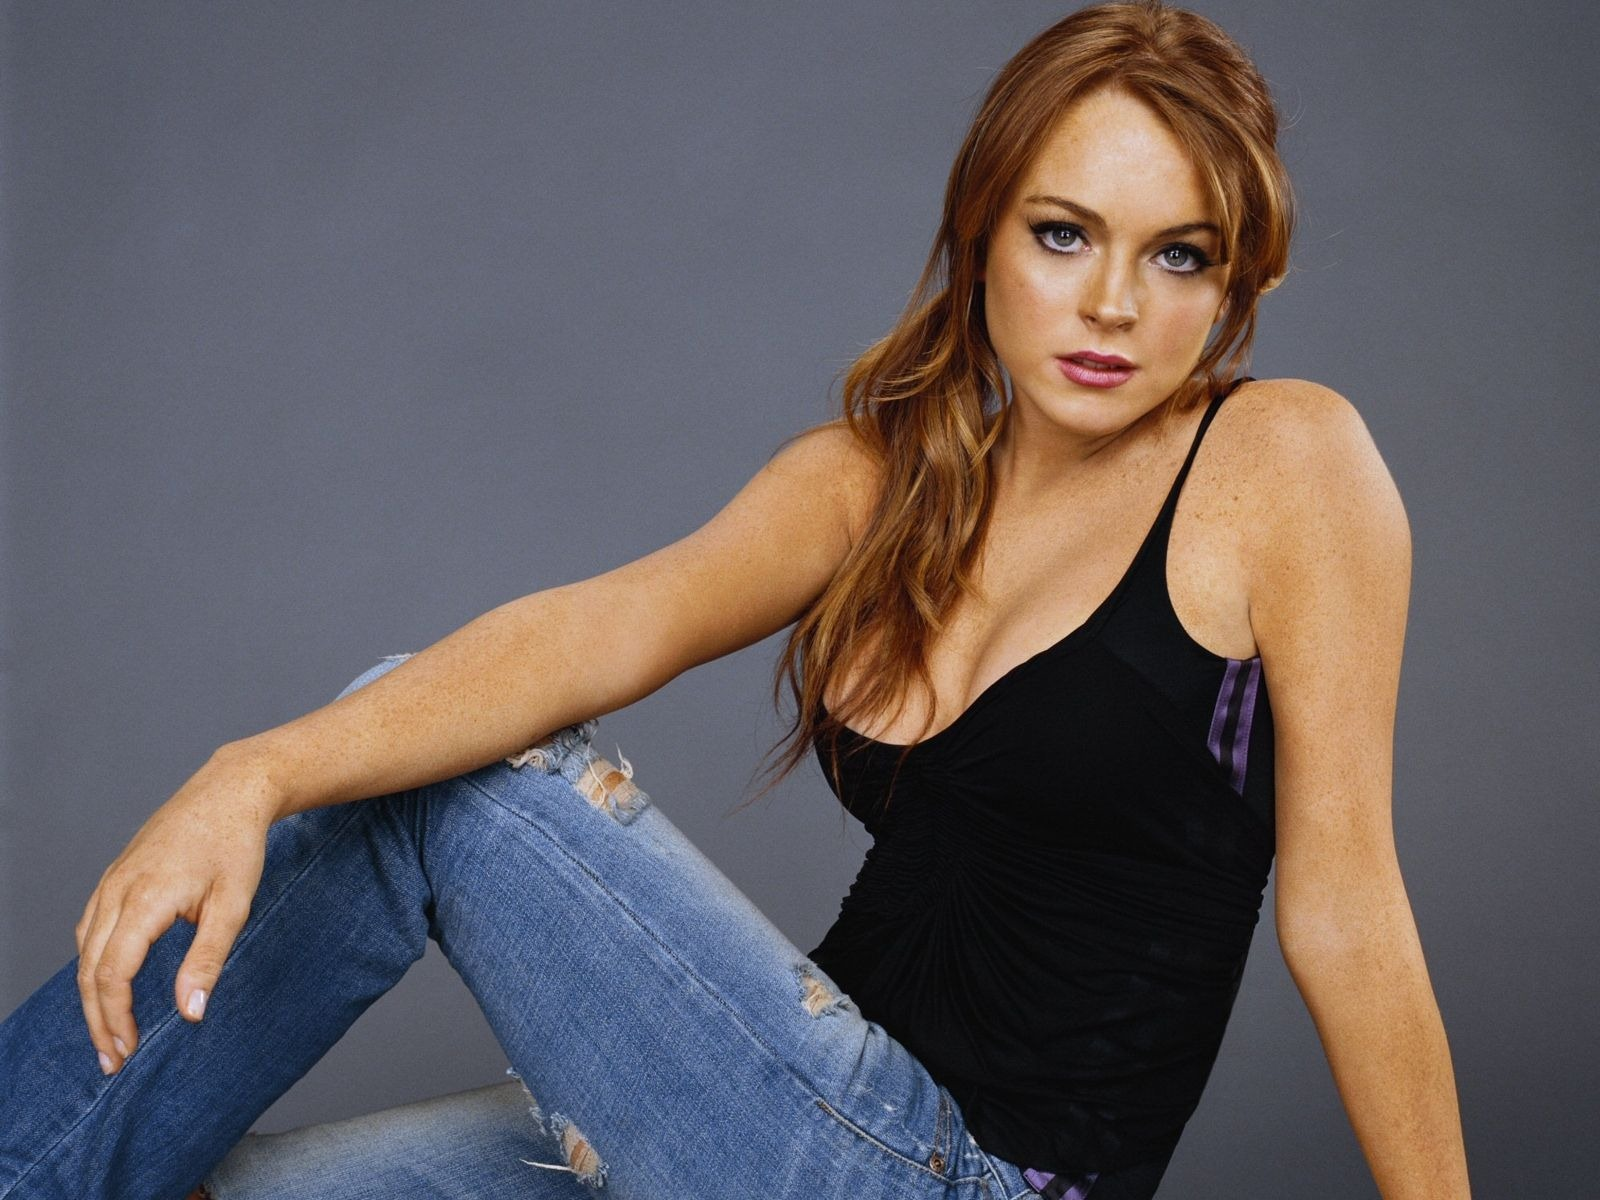 Hollywood: Lindsay Lohan Hot Images And Wallpapers 2011